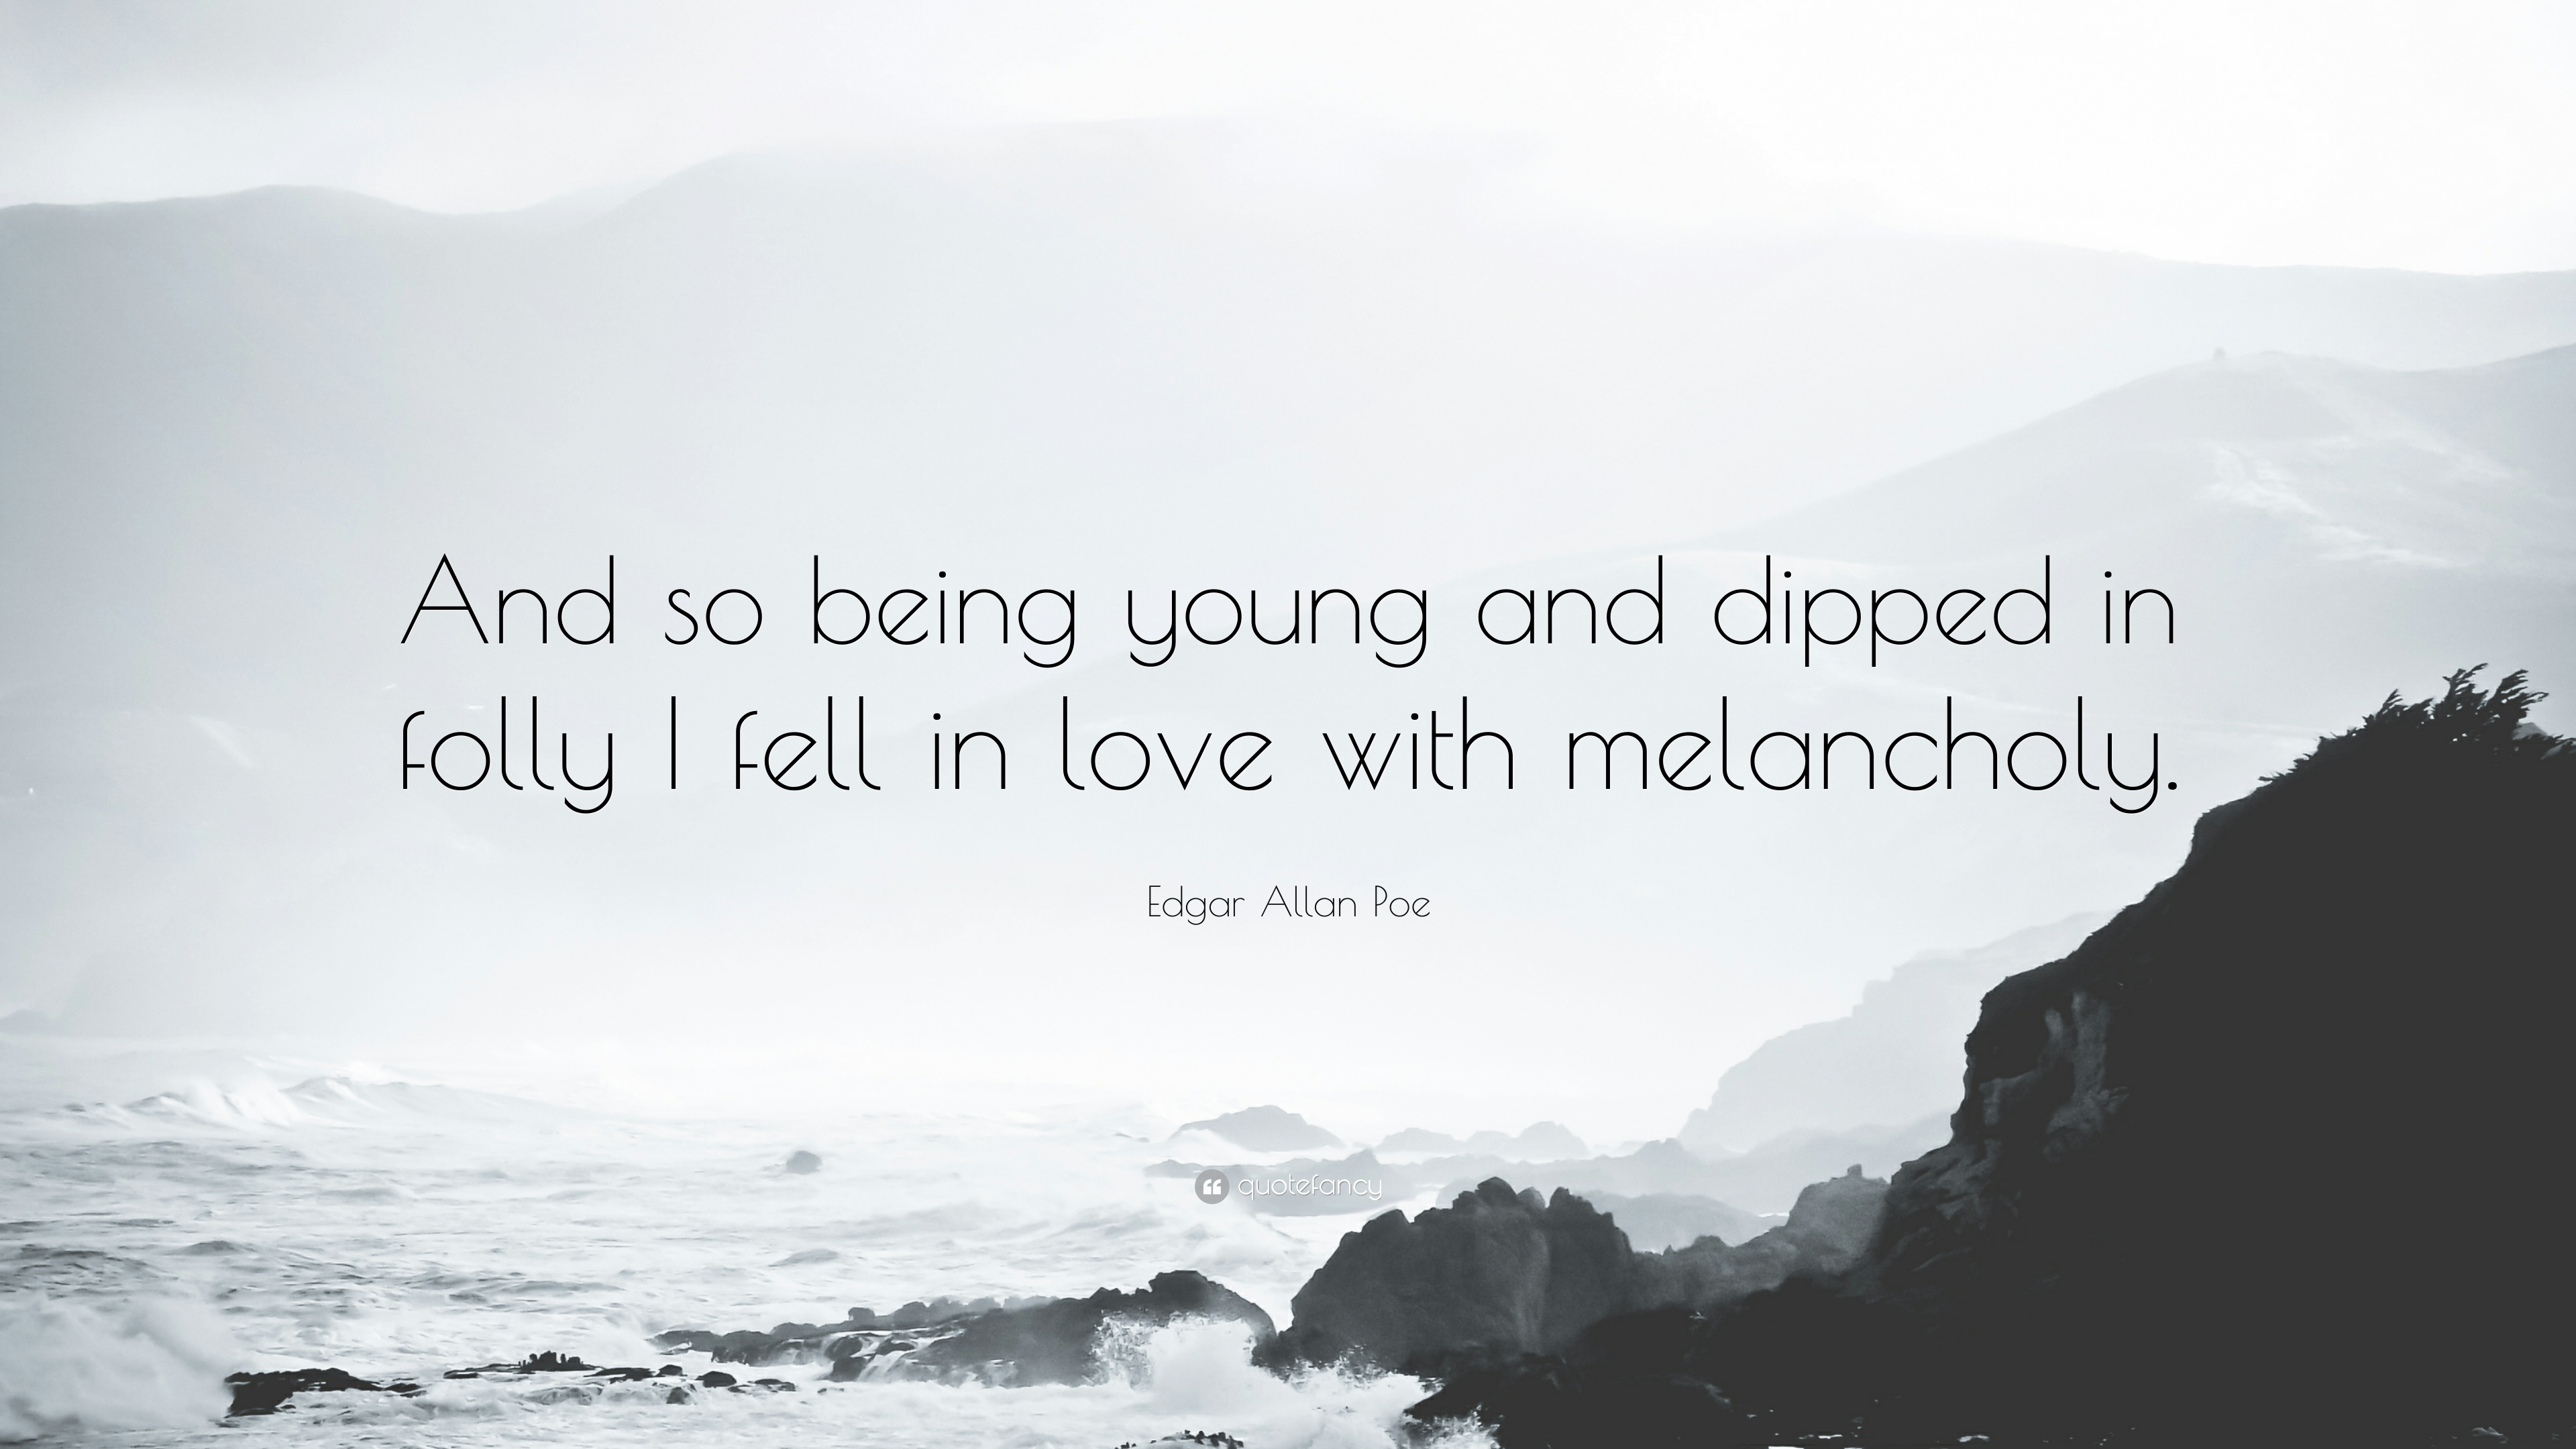 Edgar Allan Poe Love Quotes | Edgar Allan Poe Quote And So Being Young And Dipped In Folly I